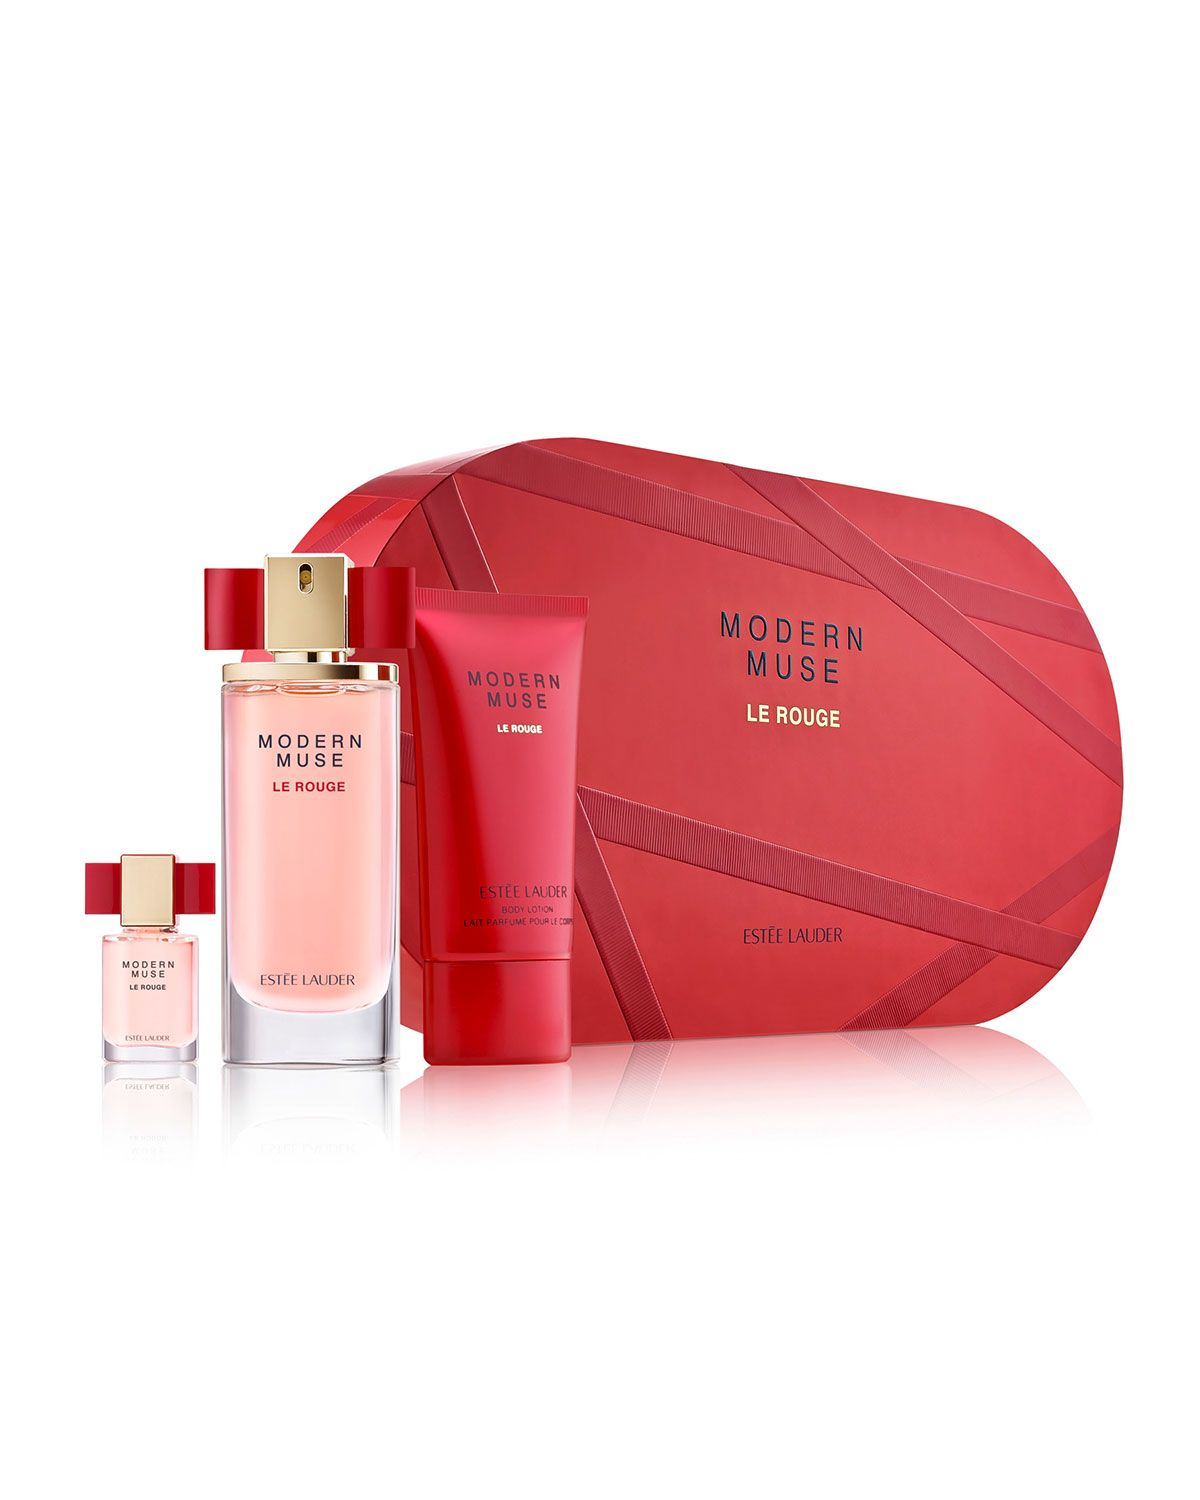 Estee Lauder Limited Edition Modern Muse Le Rouge To Go Set Estee Lauder Modern Muse Estee Lauder Modern Muse